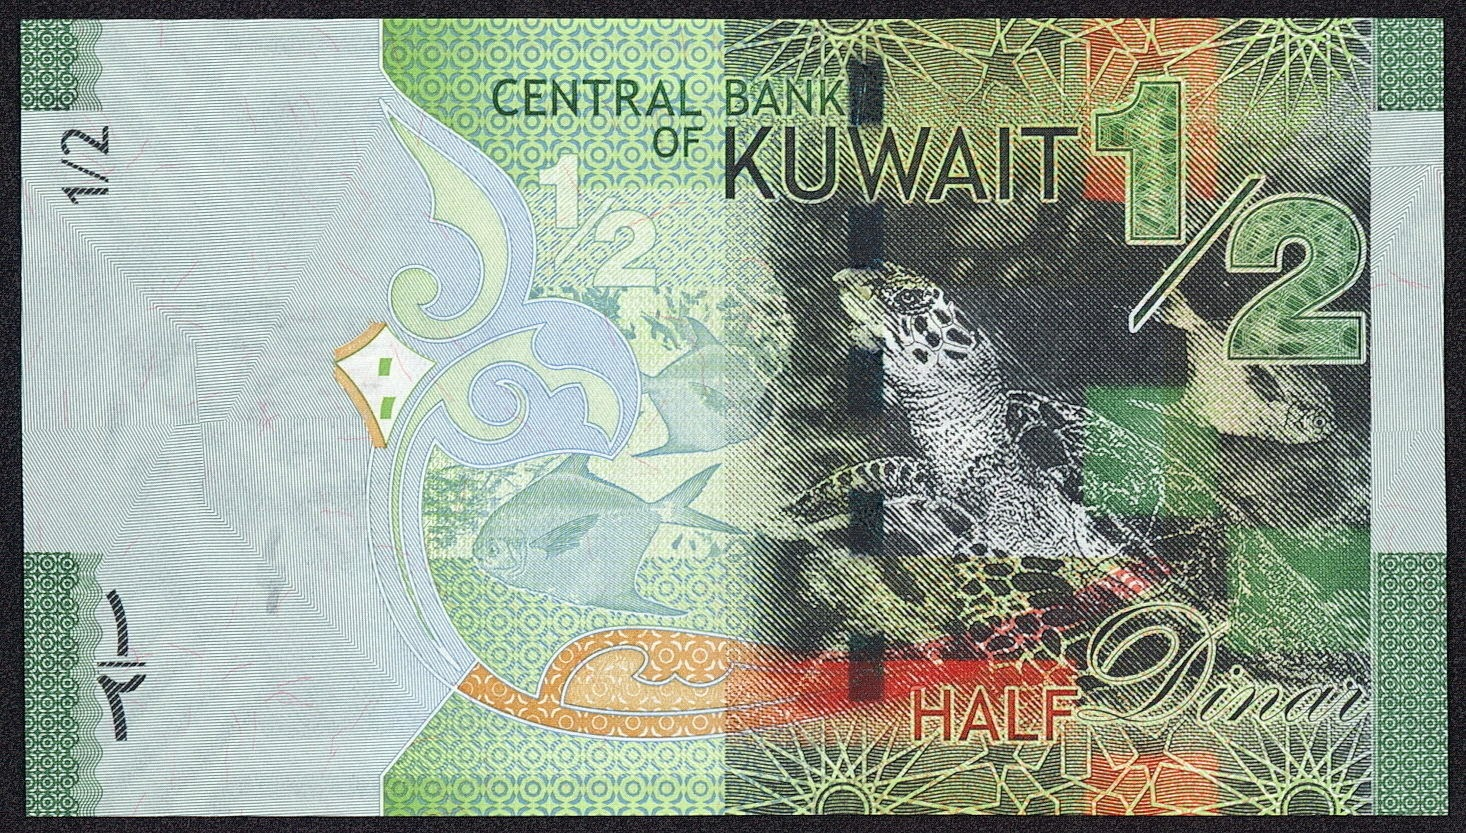 Kuwait money currency Half Dinar banknote 2014